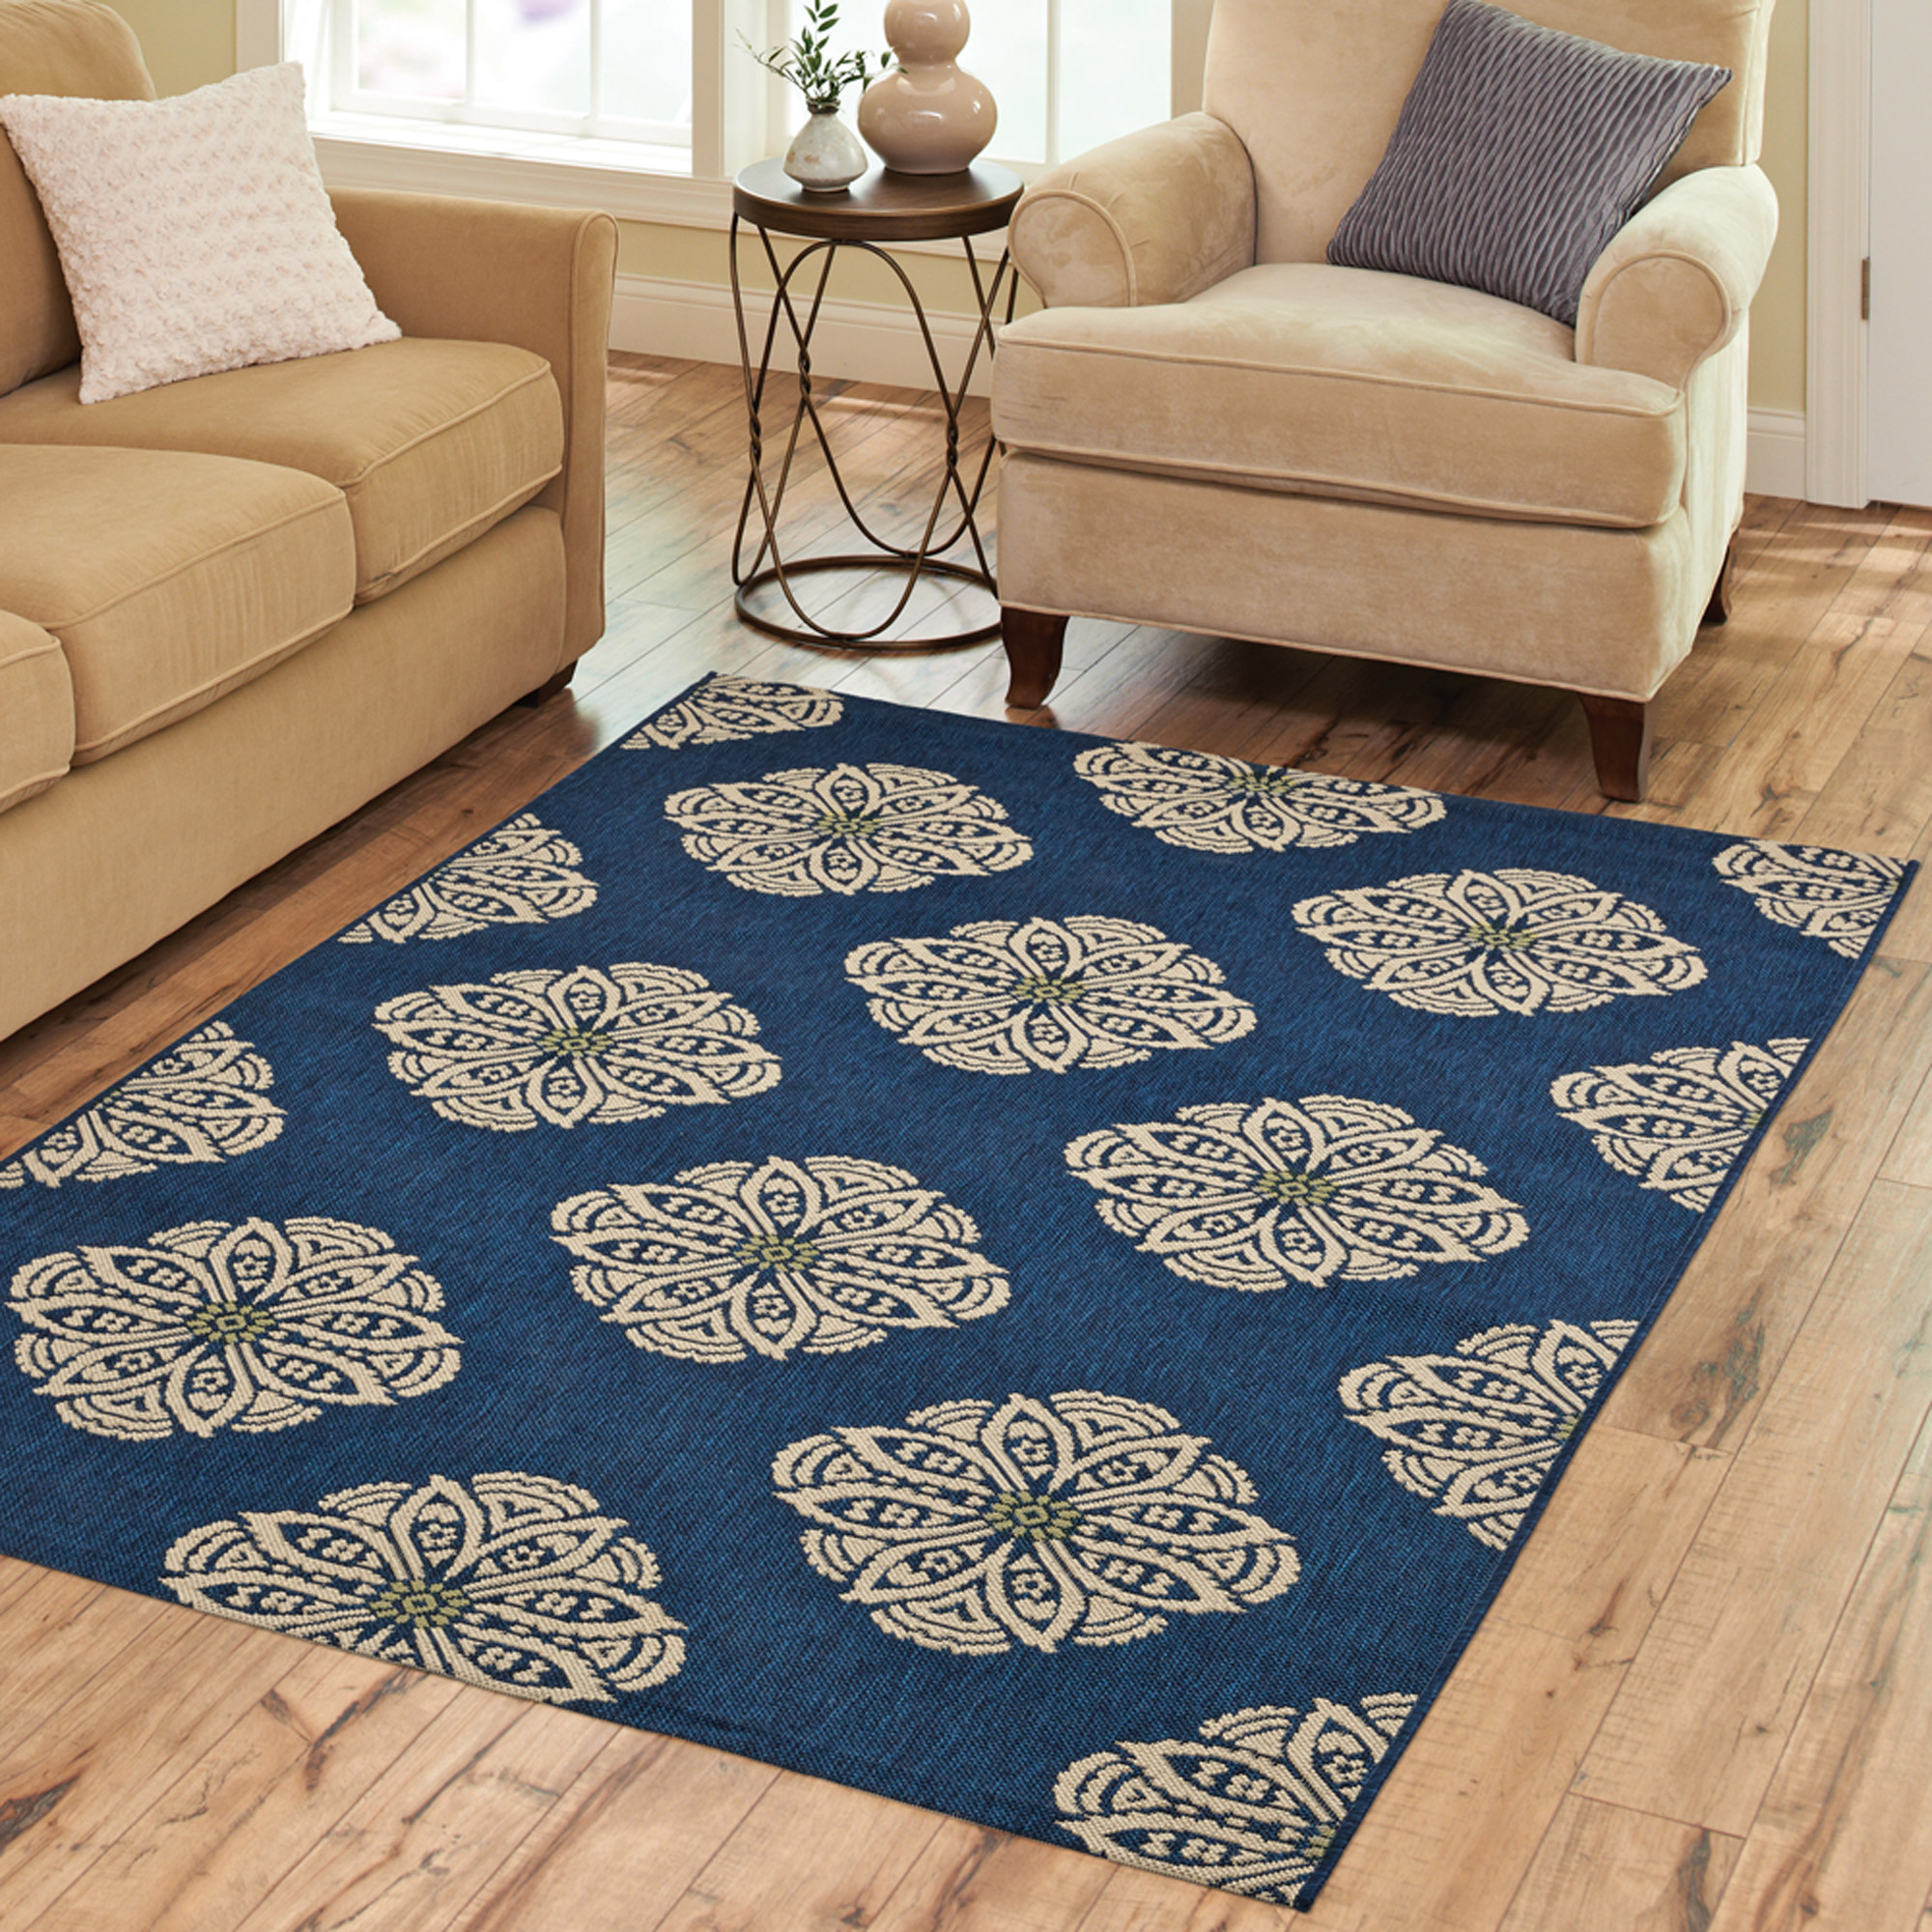 High Quality Better Homes And Gardens Medallion Indoor/Outdoor Area Rug